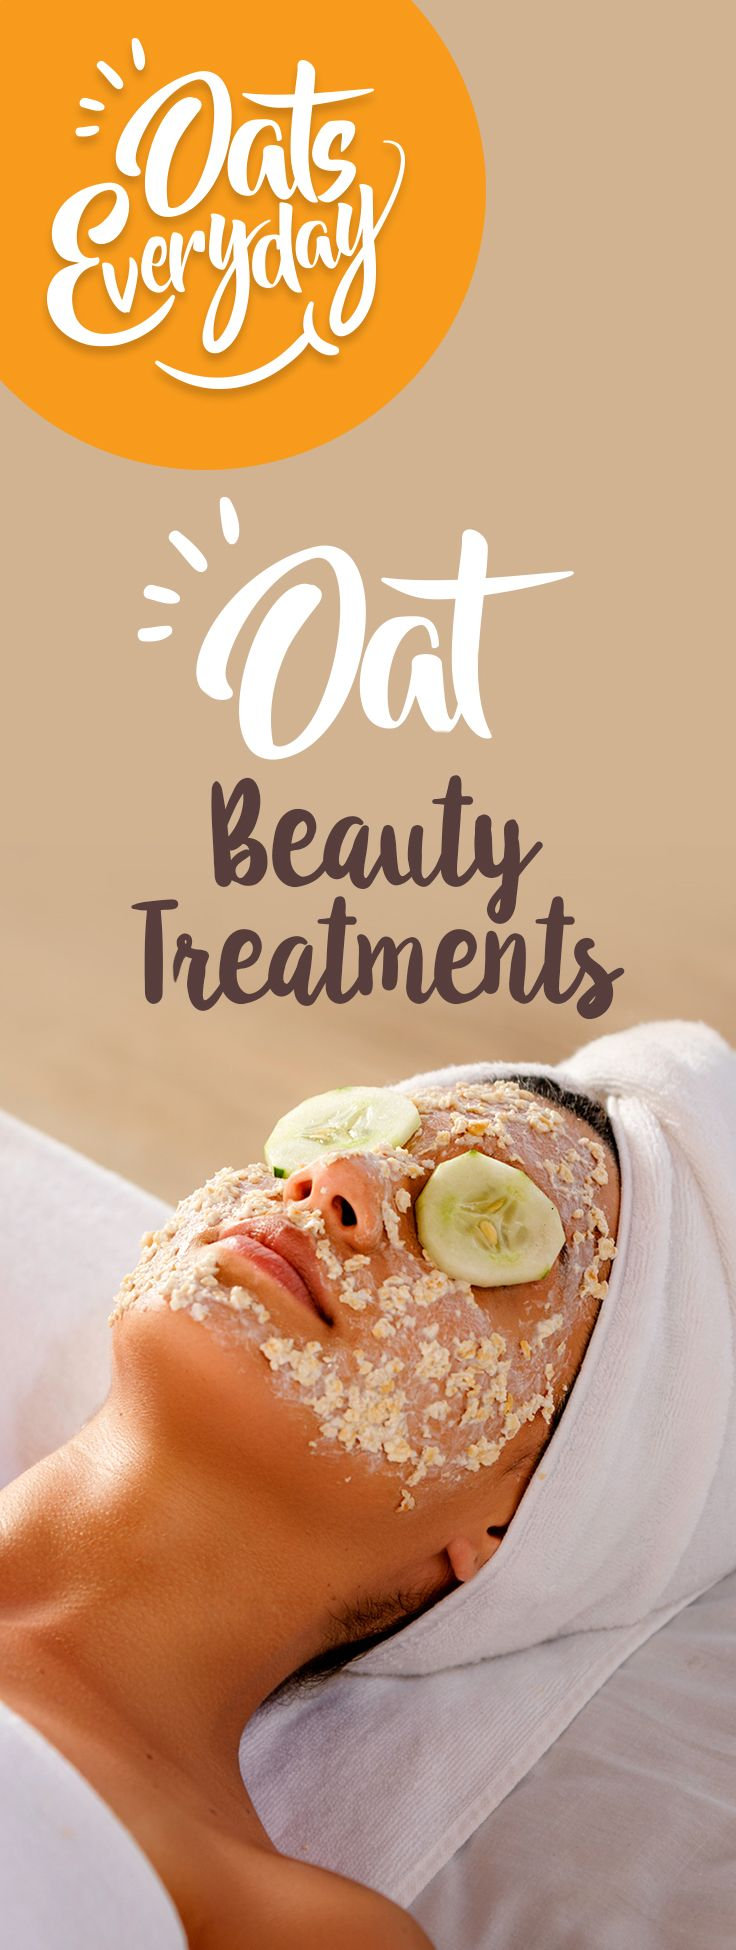 Oatmeal Skin and Hair Masks - Treat your skin with soothing, moisturizing treatments made with oats.